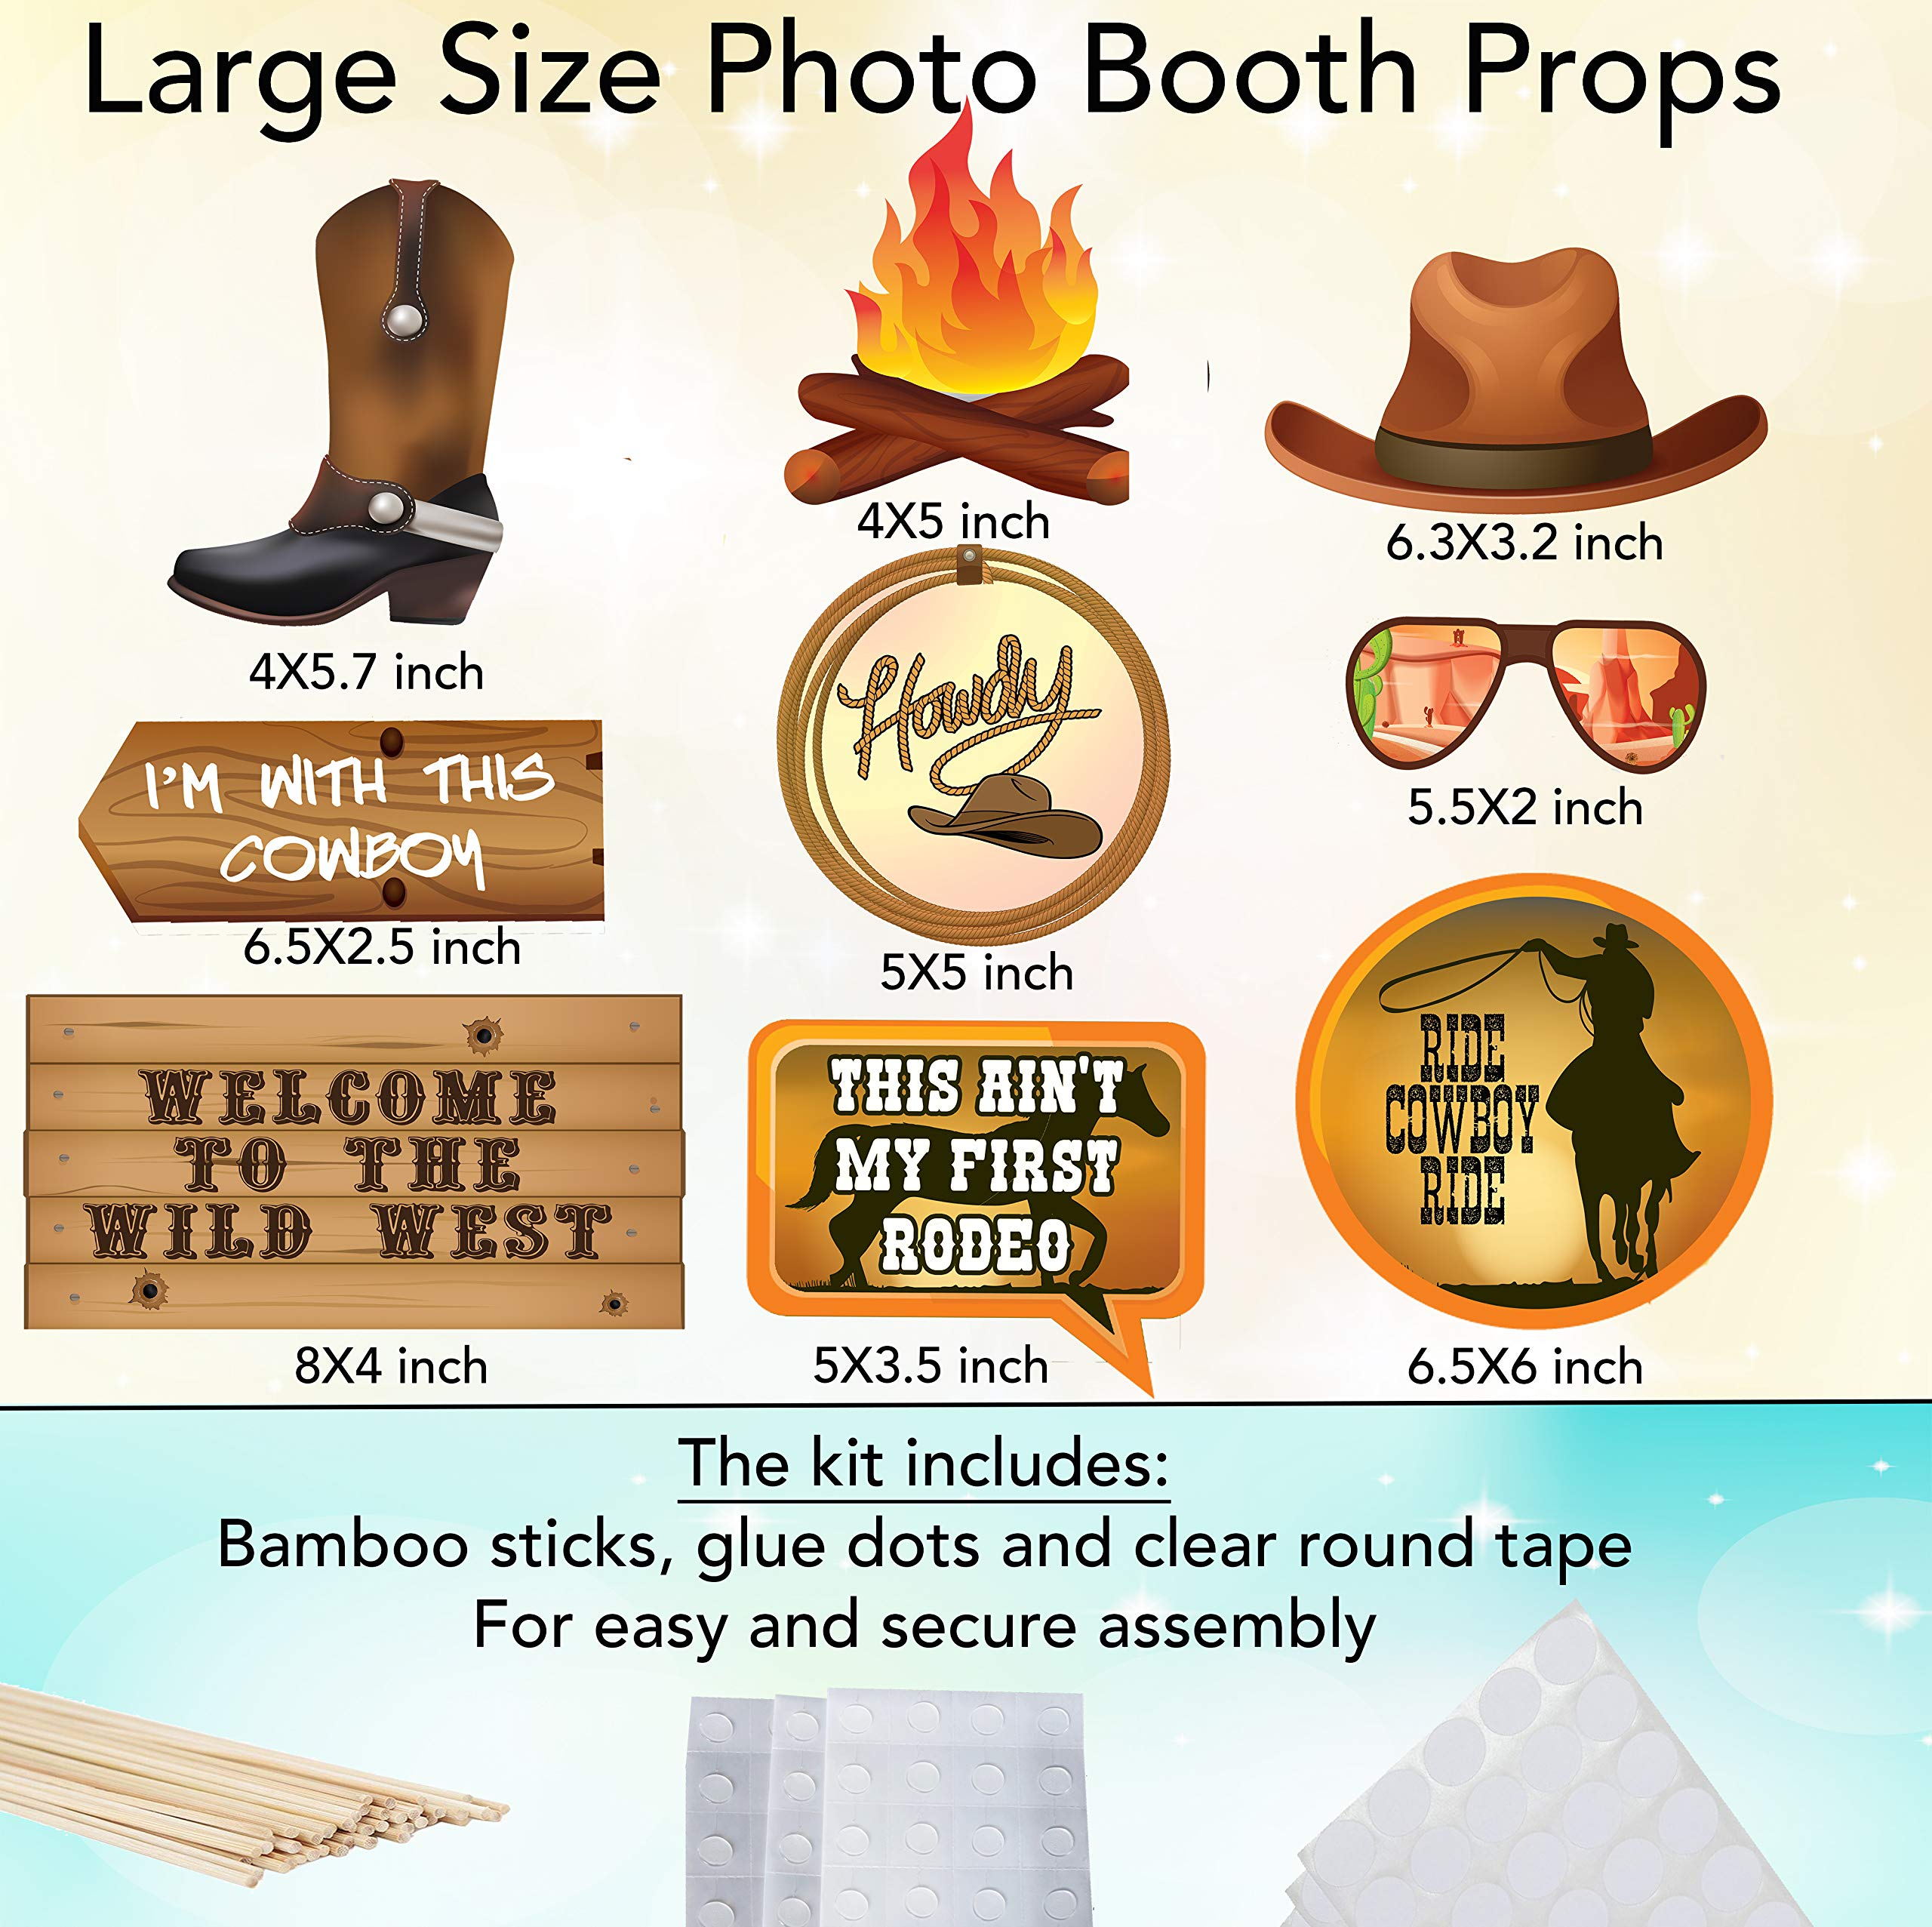 Western Photo Booth Props - Ultimate Cowgirl/Cowboy Party Decorations for Decorating Walls, Doors, Tables - 42 Large Colorful Photo Props Complete with Glue Dots and Bamboo Rods by Scapa Pro